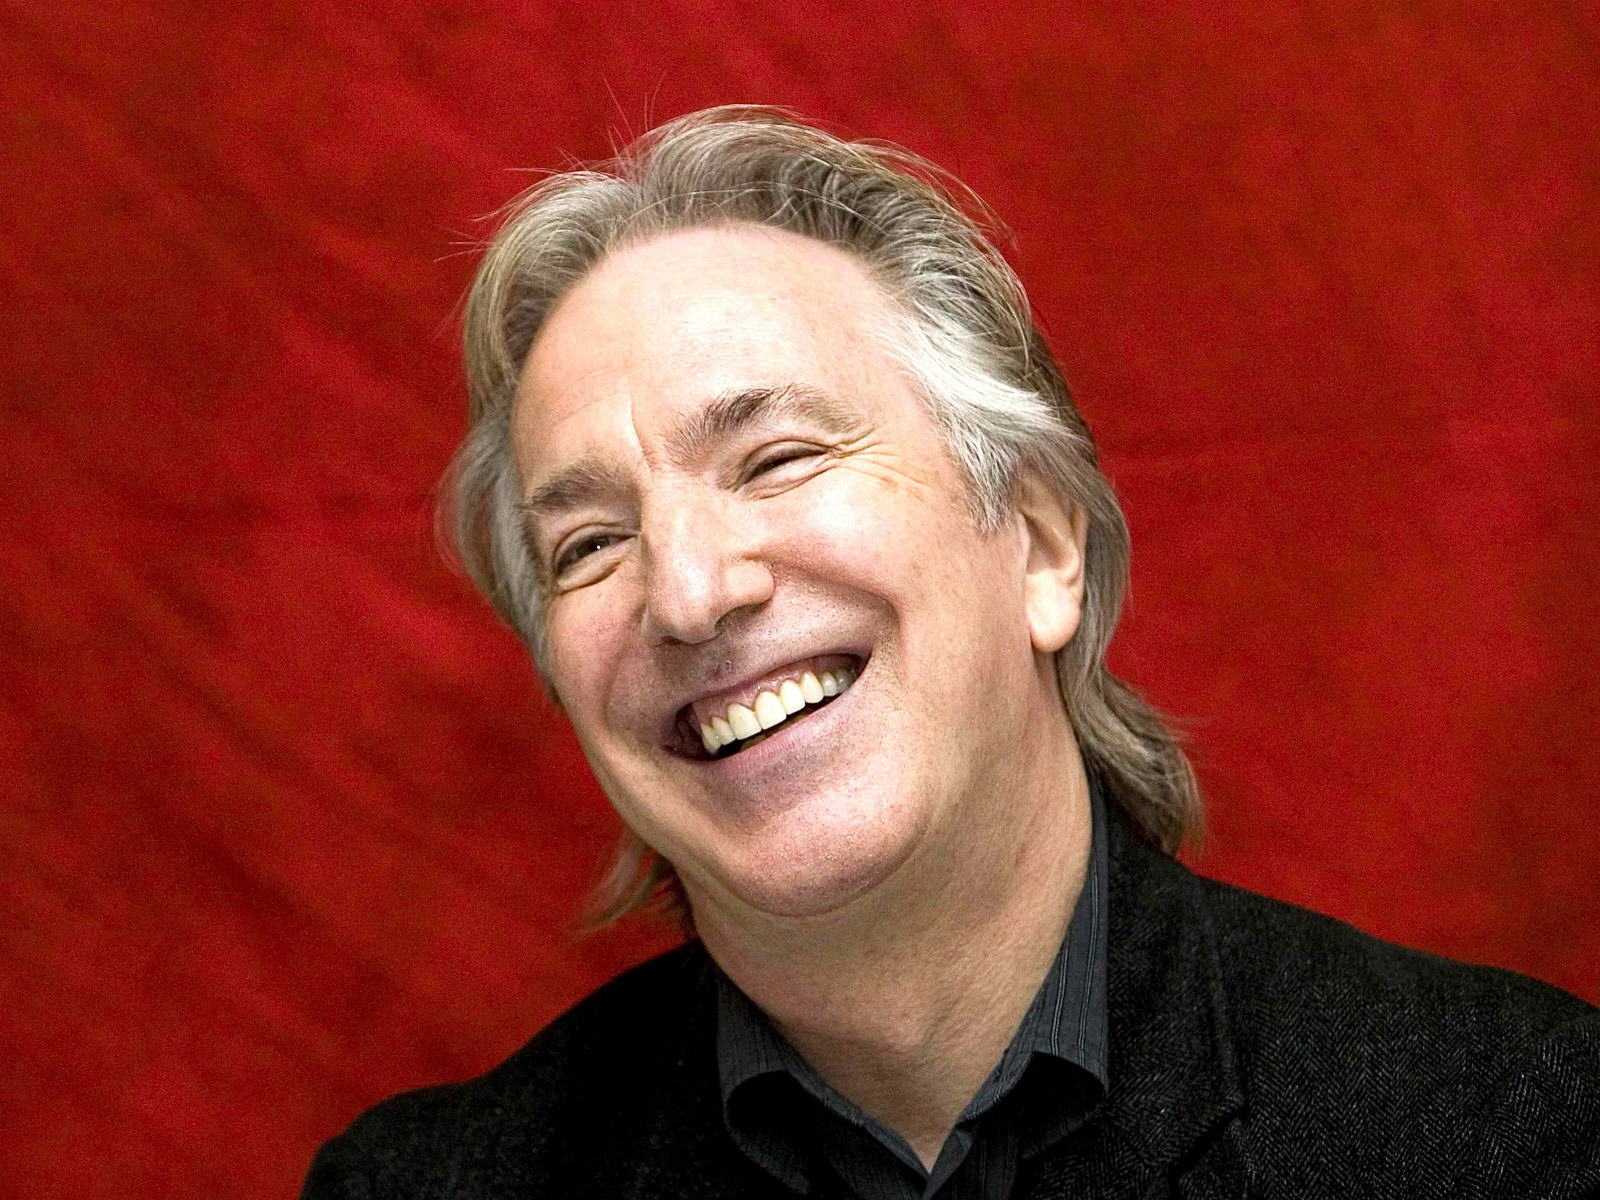 Heres The Video That Alan Rickman Wanted You To Watch 1 6